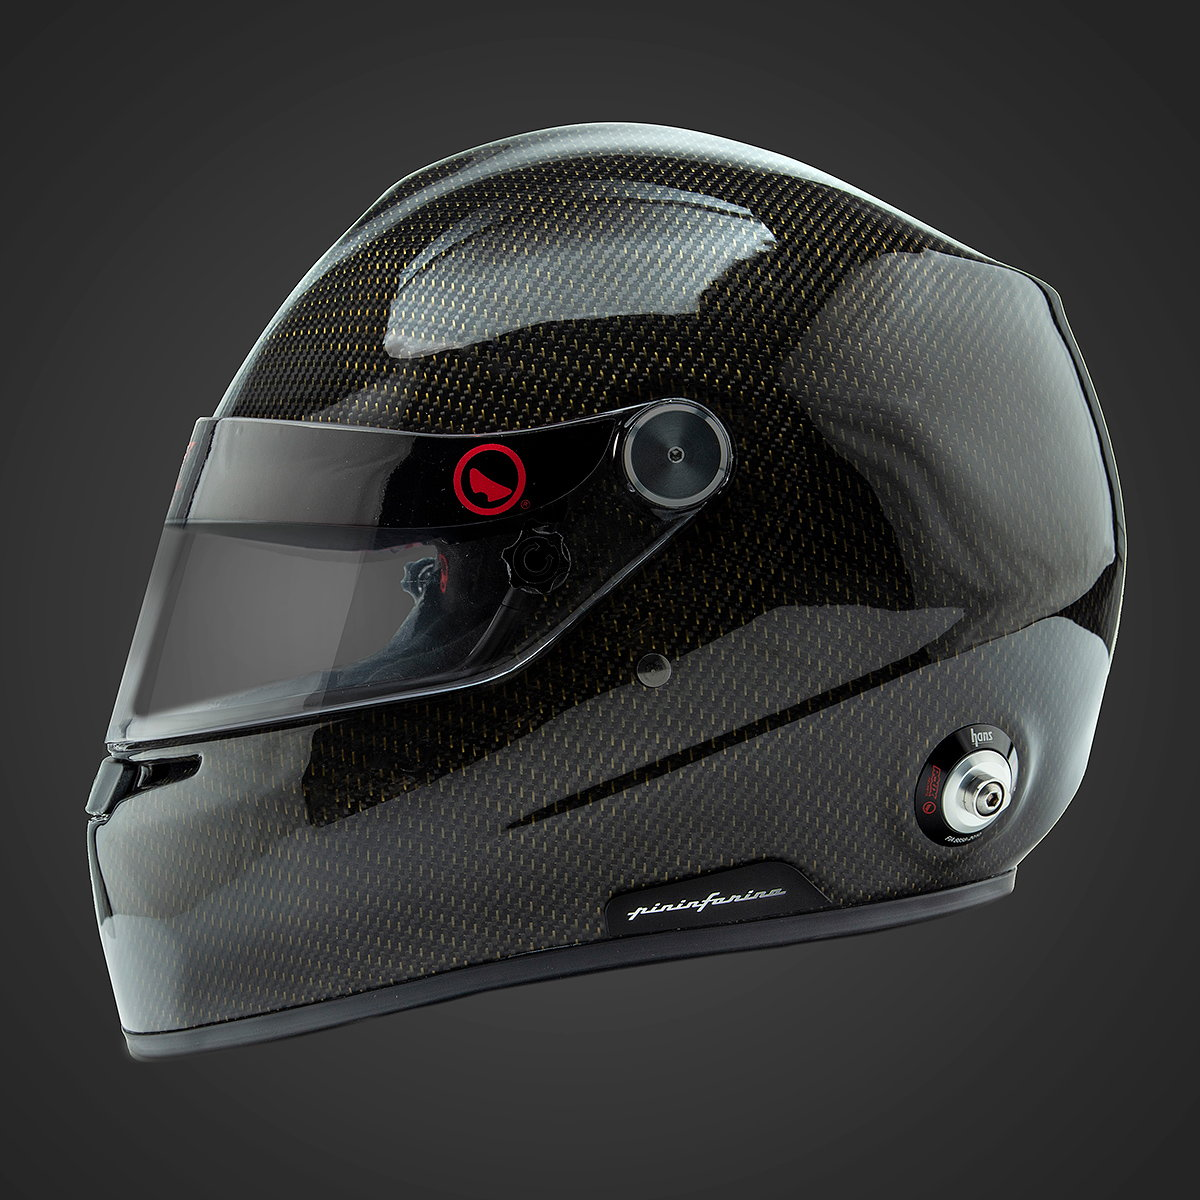 Pininfarina and Roux Debut New Helmet Line